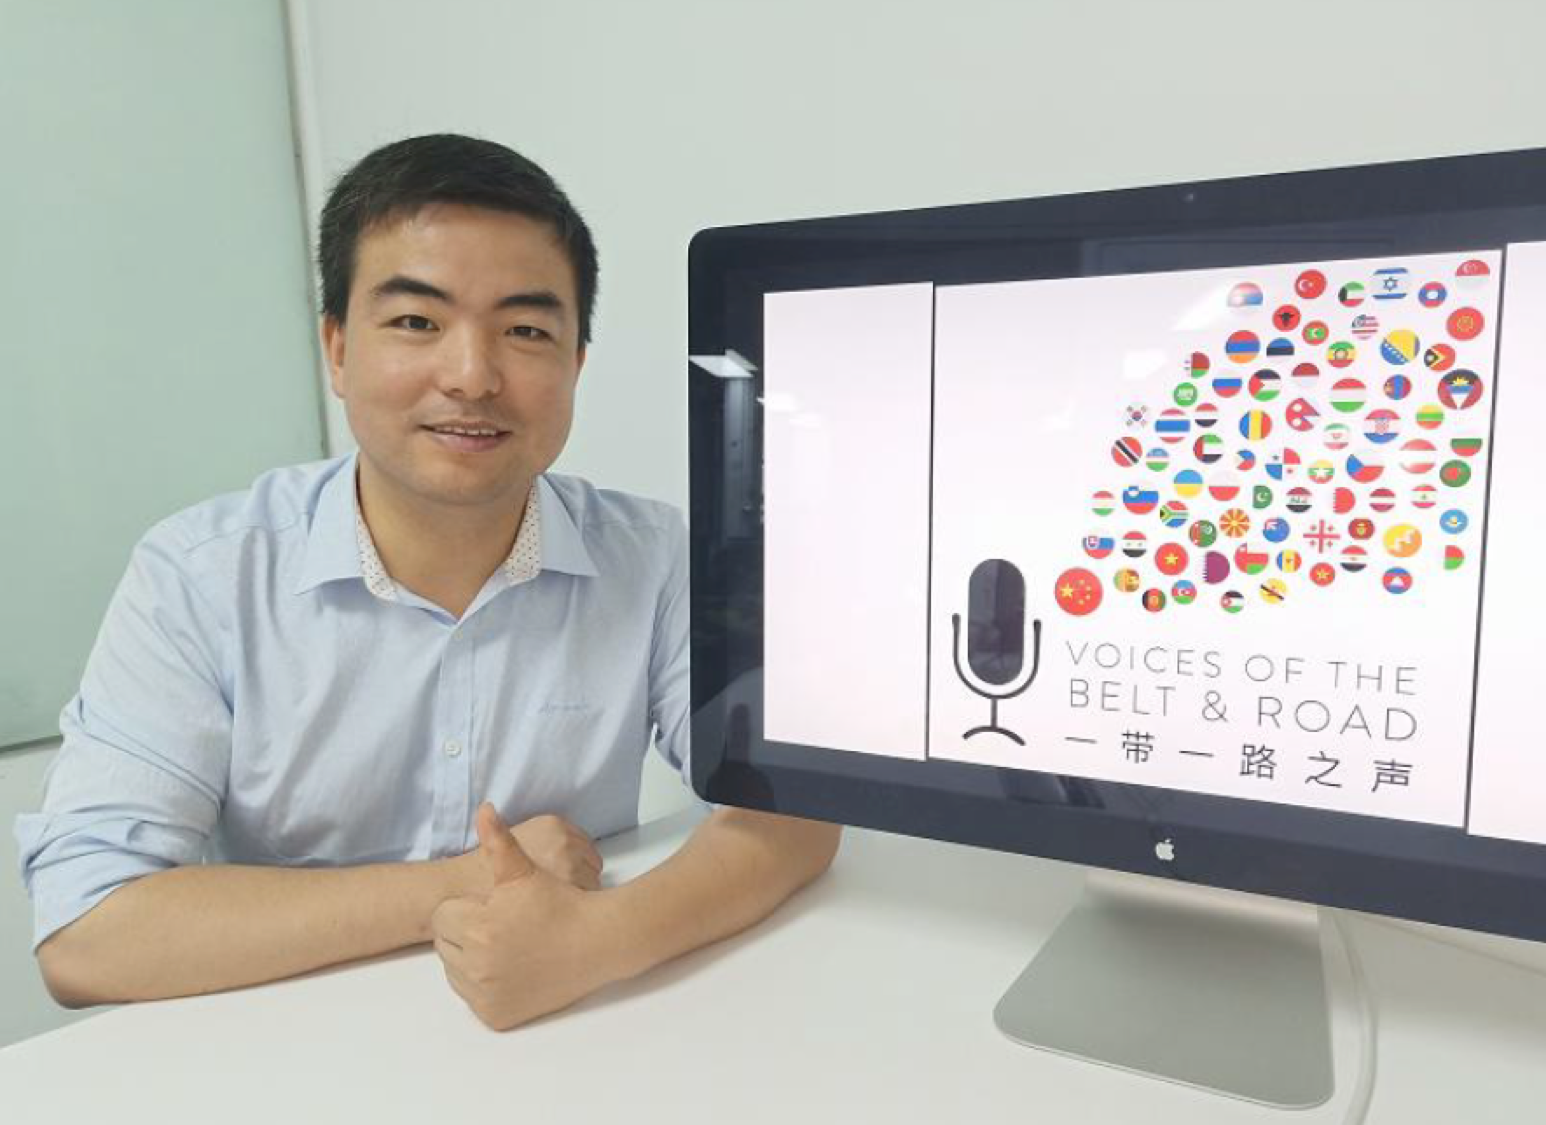 Being interviewed for the Voices of the Belt & Road podcast